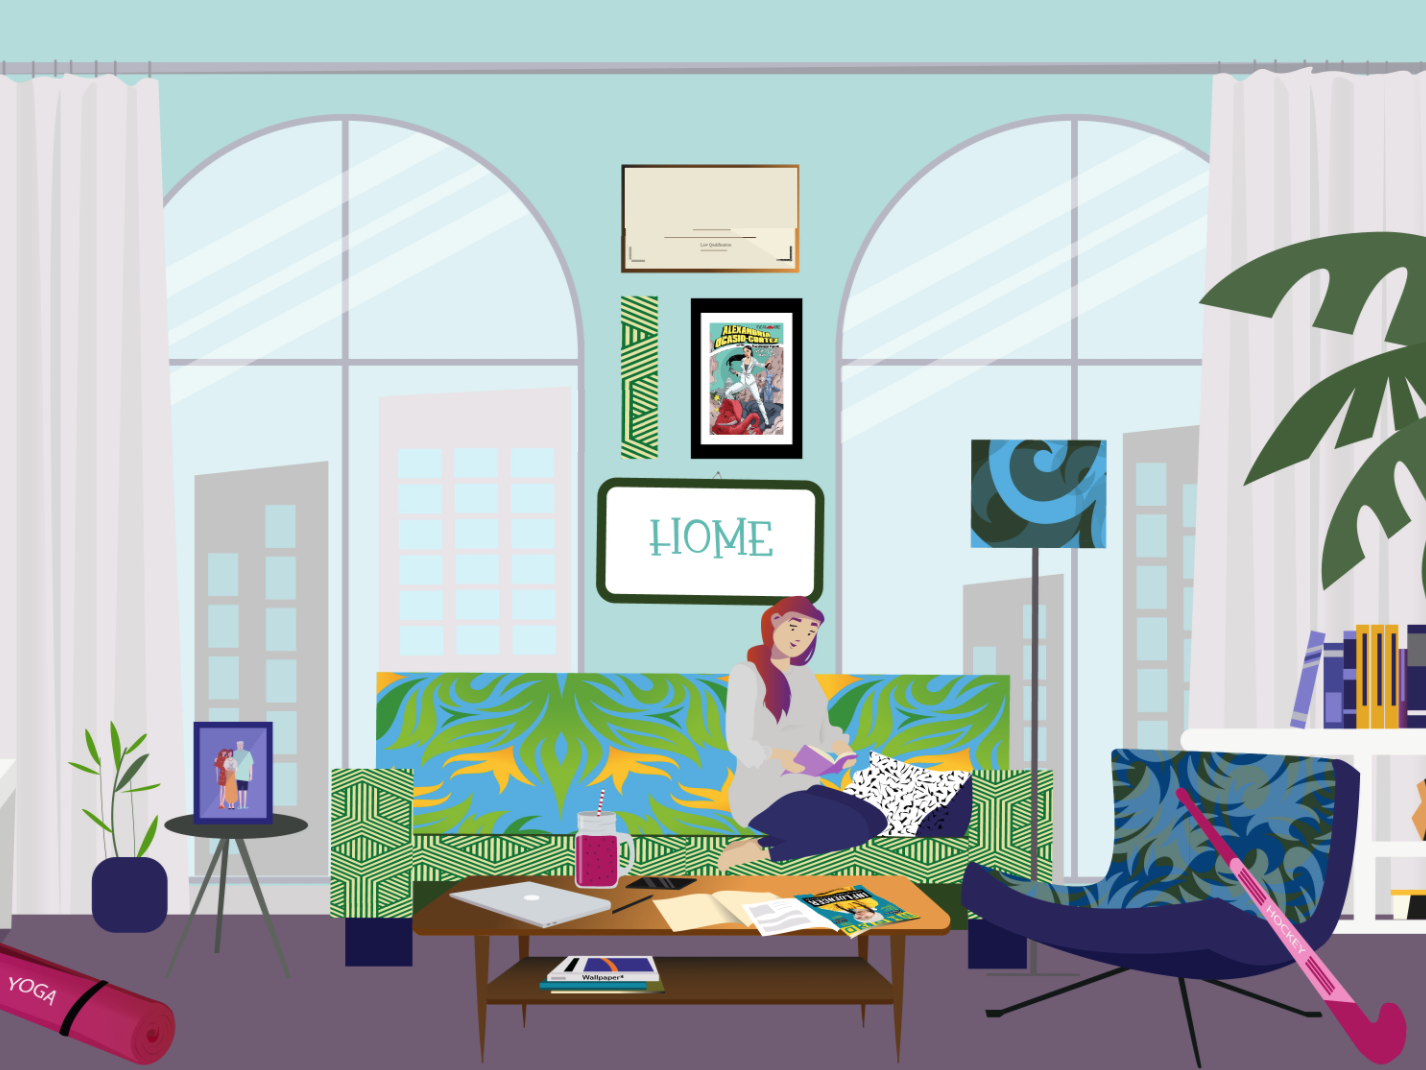 Room project for a Pitch / presentation by Manuela Fiori on